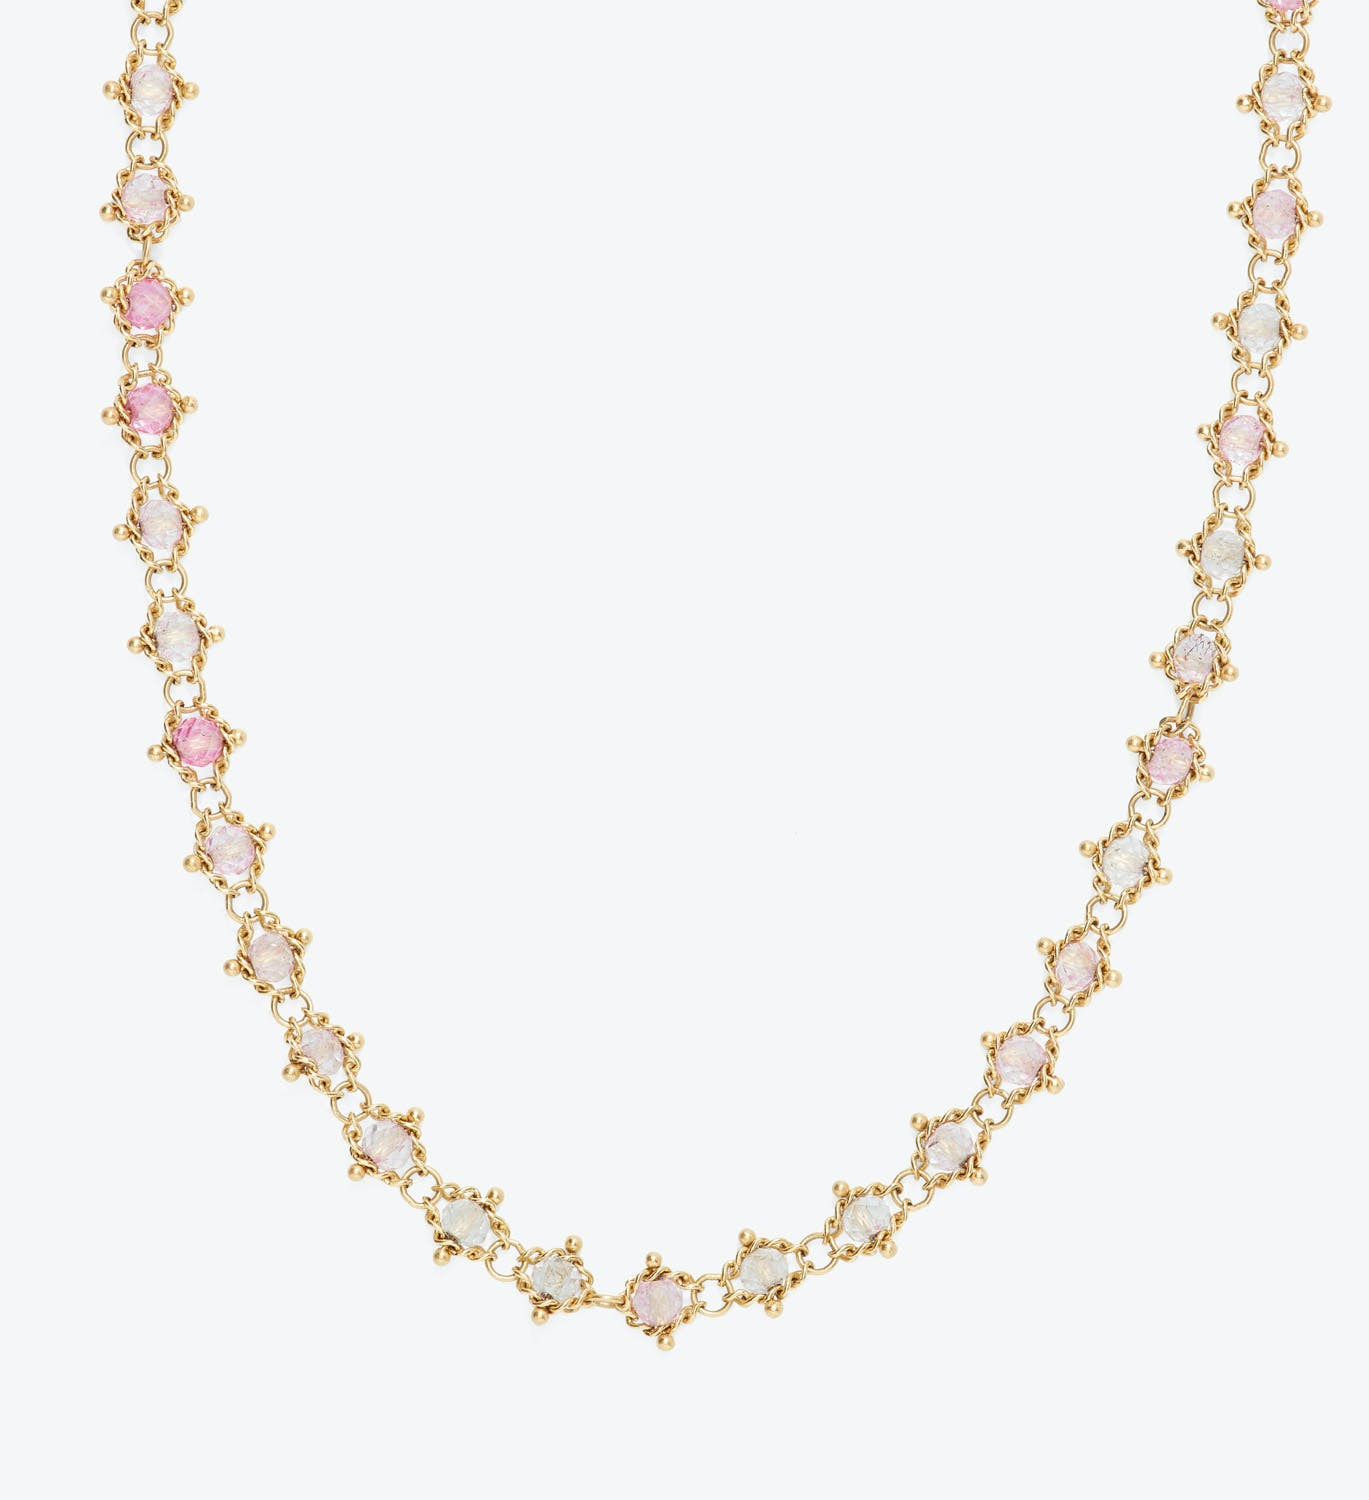 Amali Pink Topaz Textile Necklace